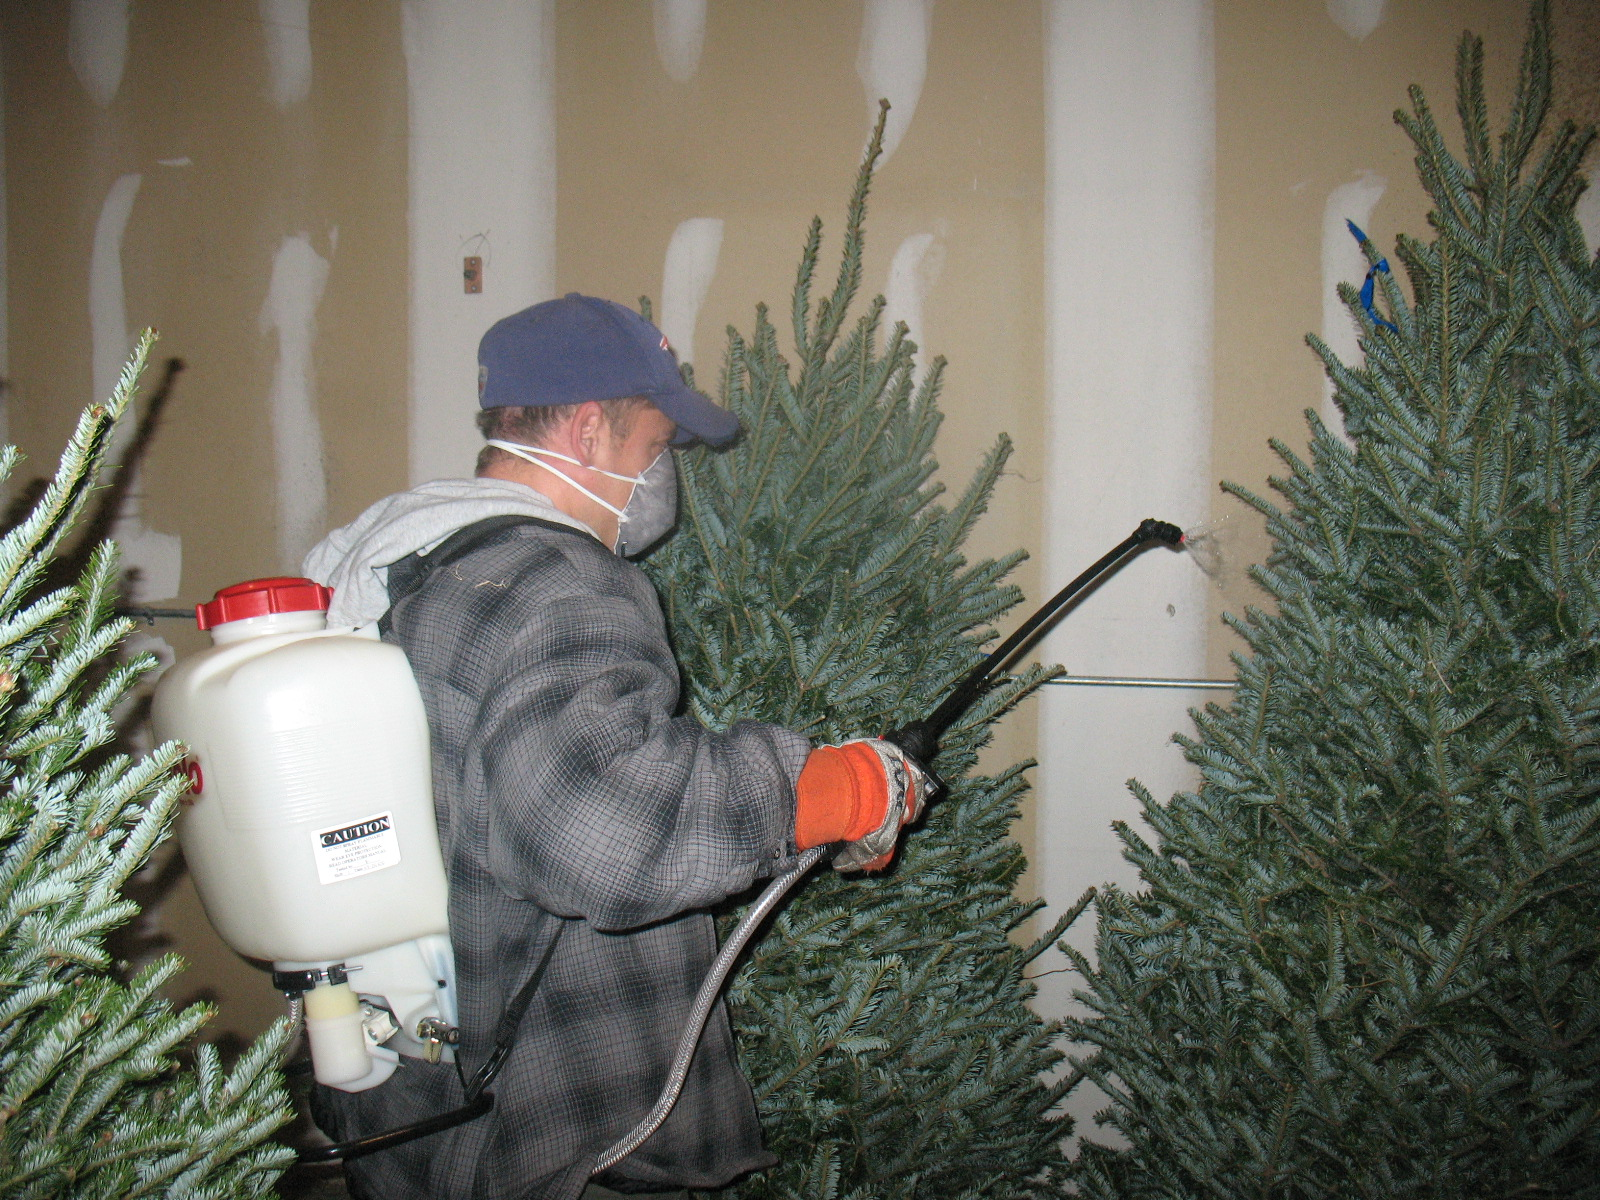 Superb Fire Retardant Spray For Christmas Trees Part - 5: Spraying Christmas Tree Fire Retardant .